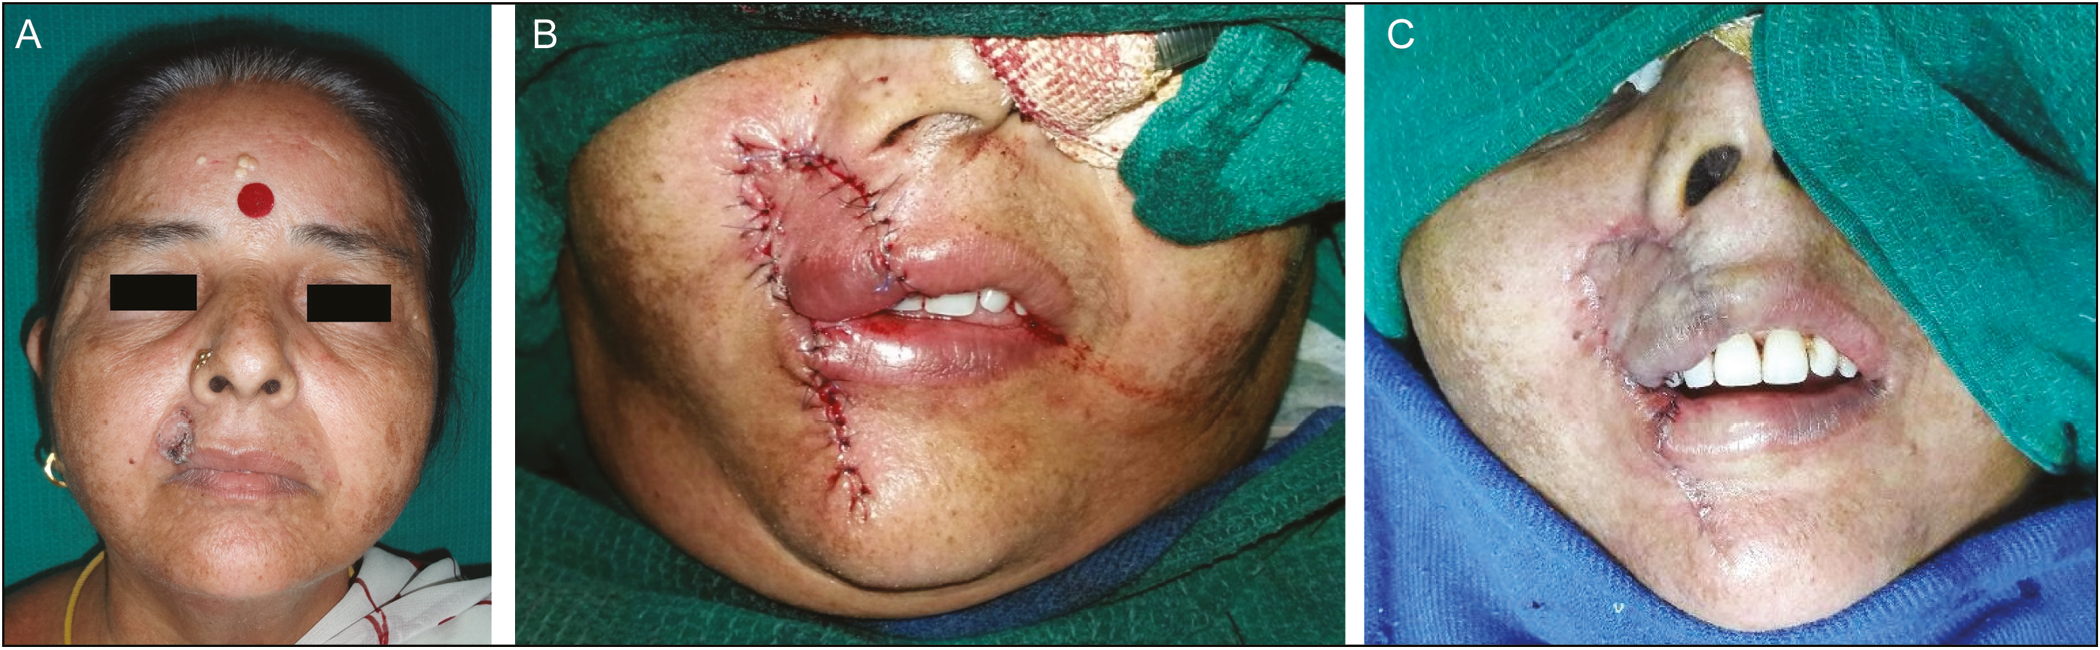 Figure 11: (A) BCC of upper lip right side. (B) Reconstruction using Abbe flap. (C) Abbe flap after division and inset